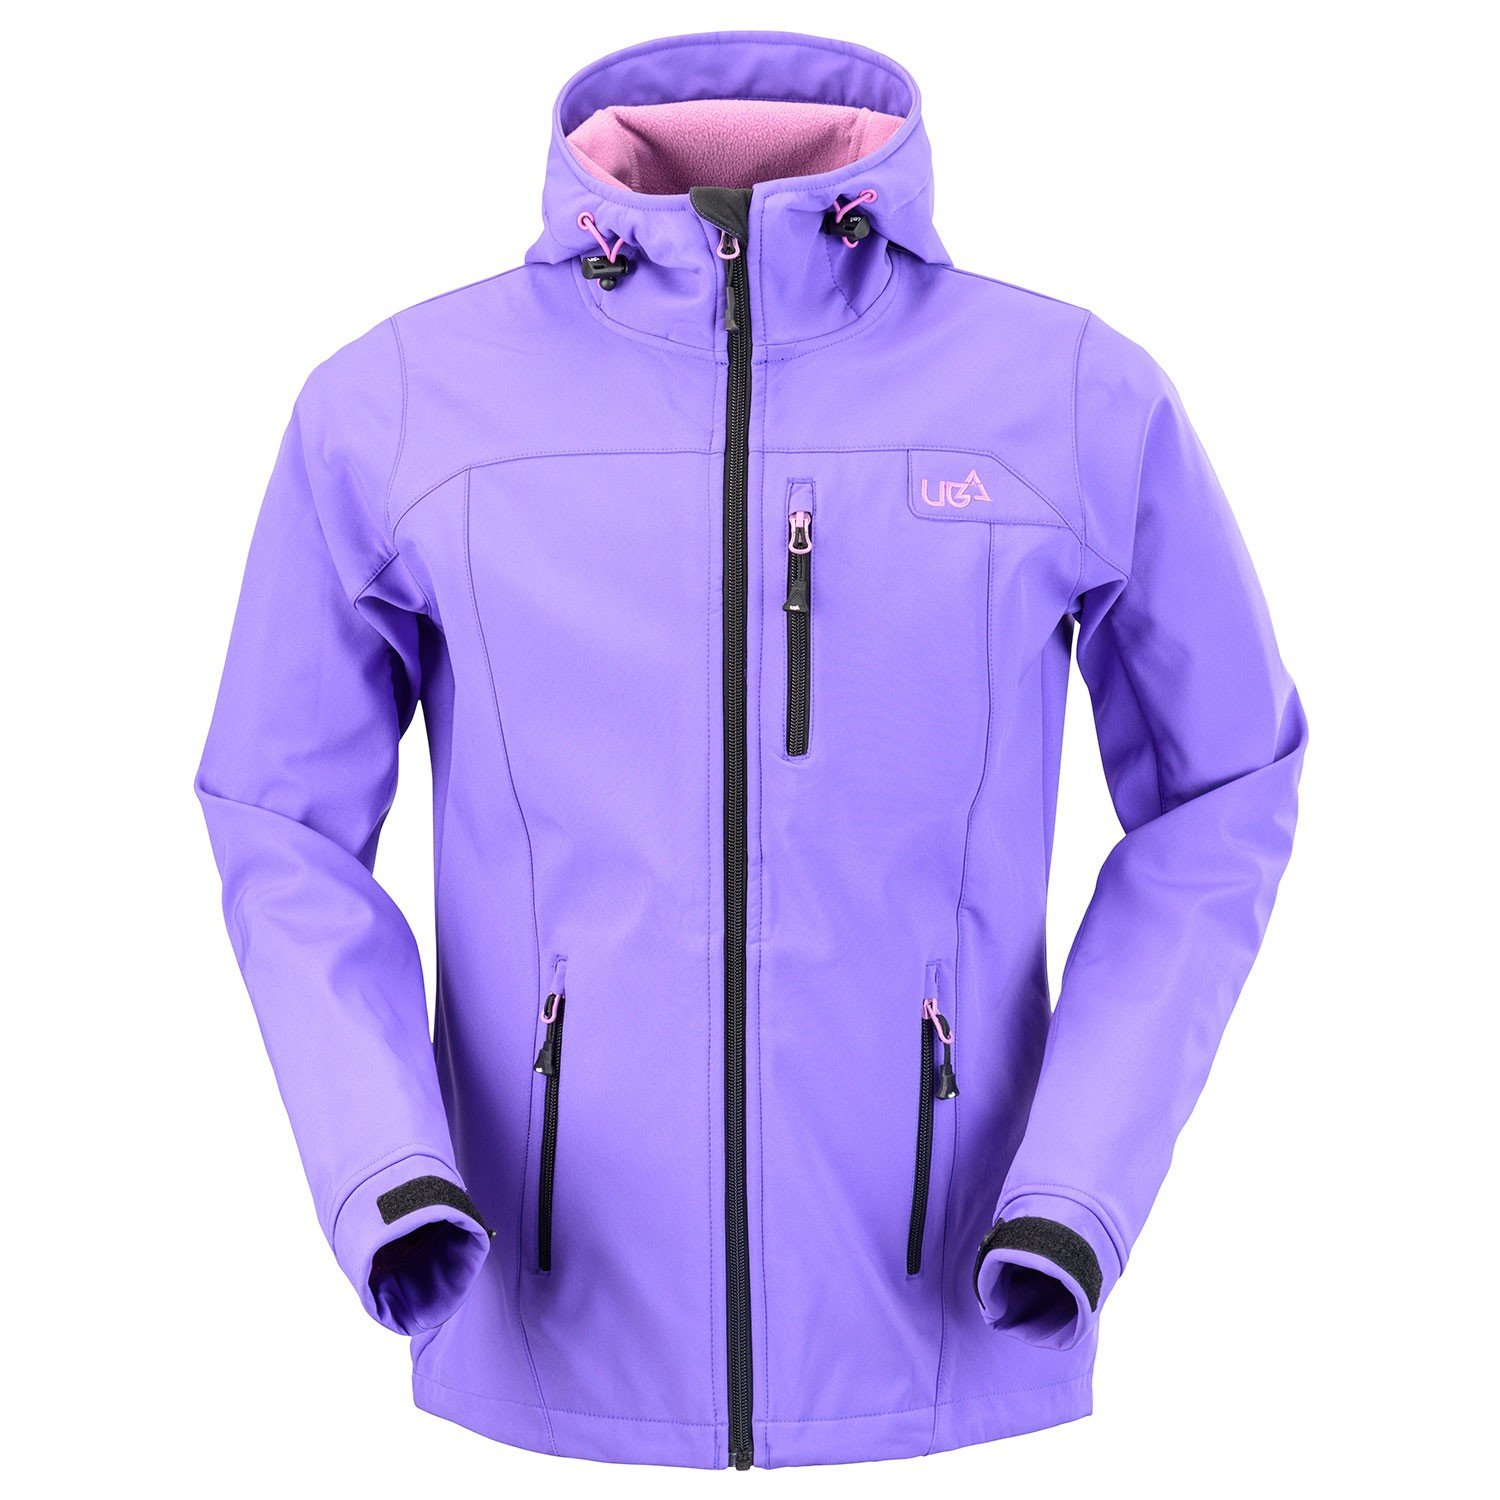 Find great deals on eBay for ladies purple jacket. Shop with confidence.